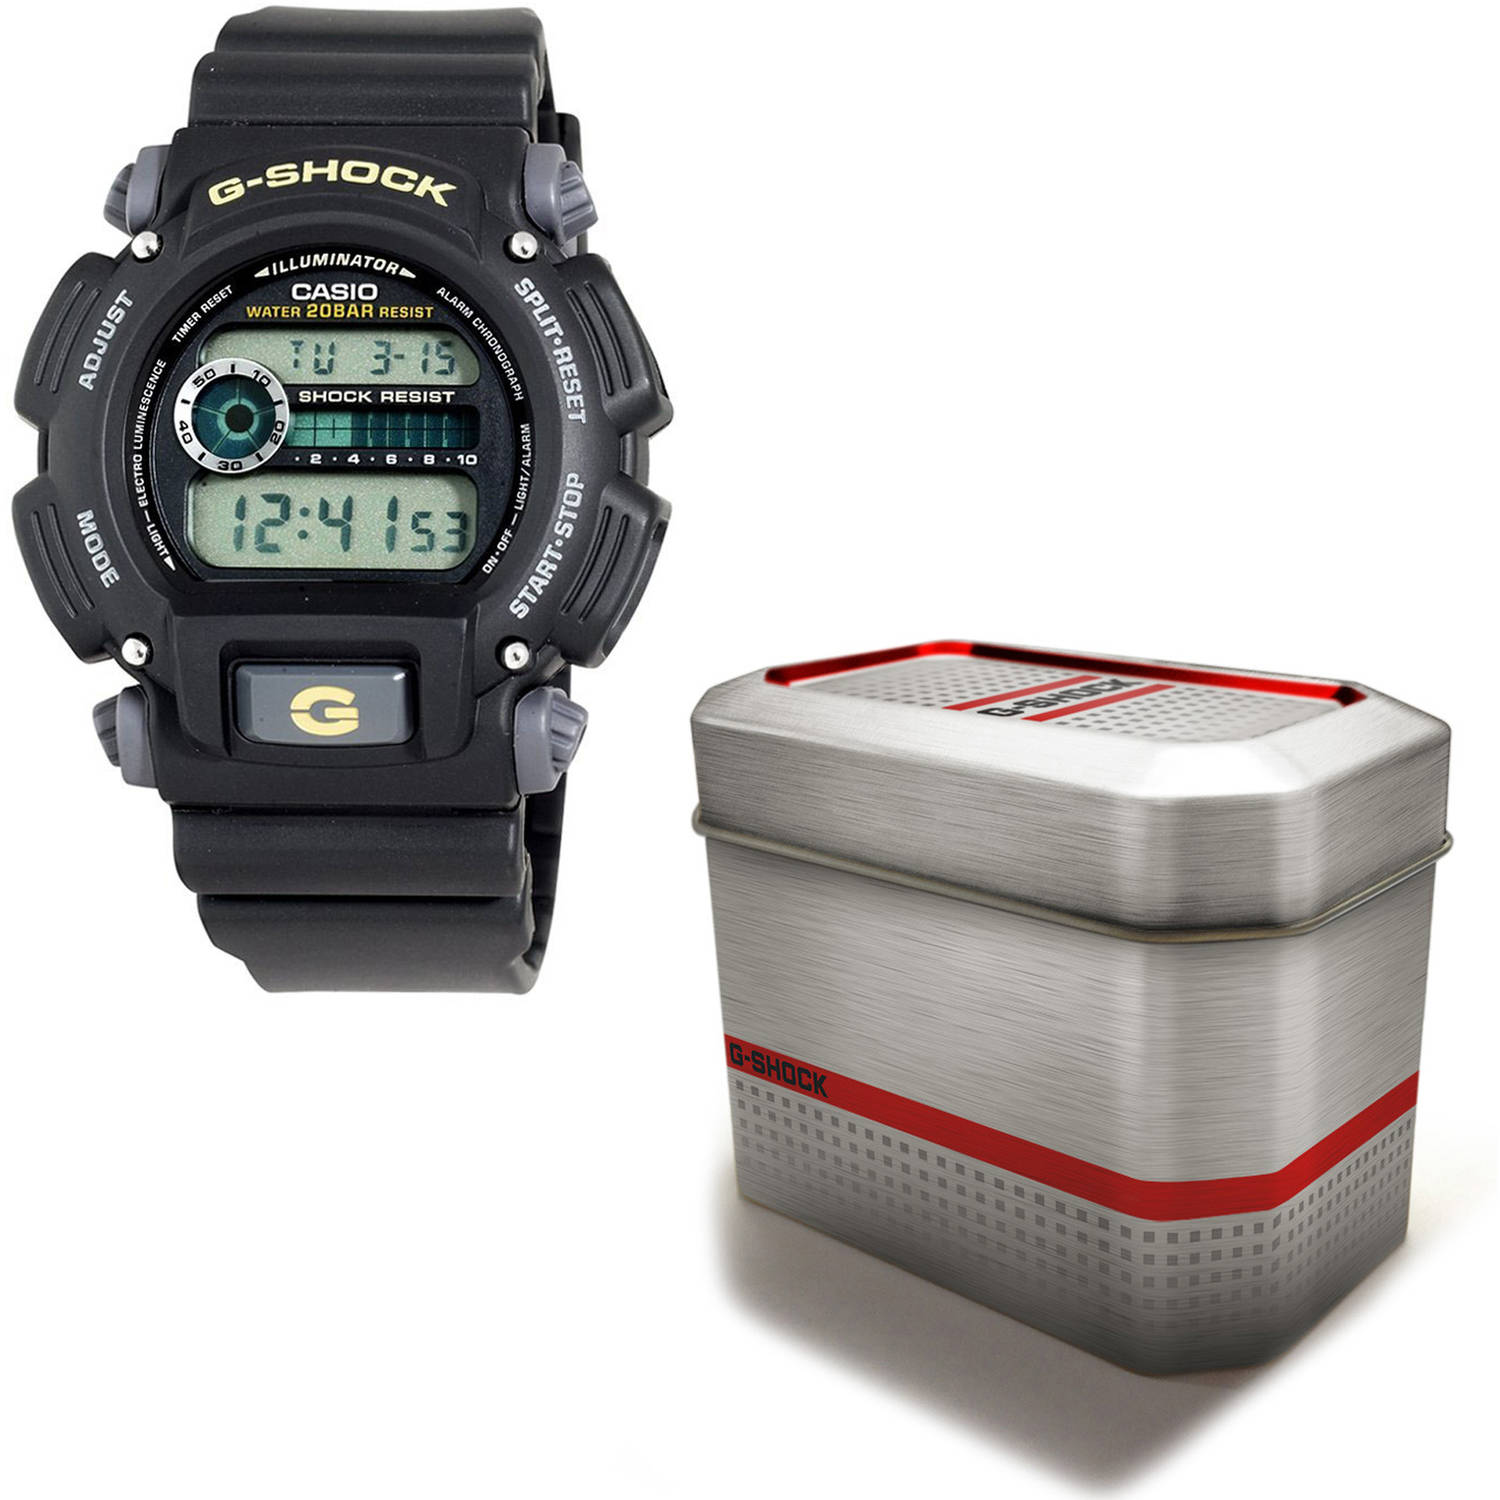 Casio Men's G-Shock Watch with Reusable Gift Tin, Gold Accents with Black Resin Strap